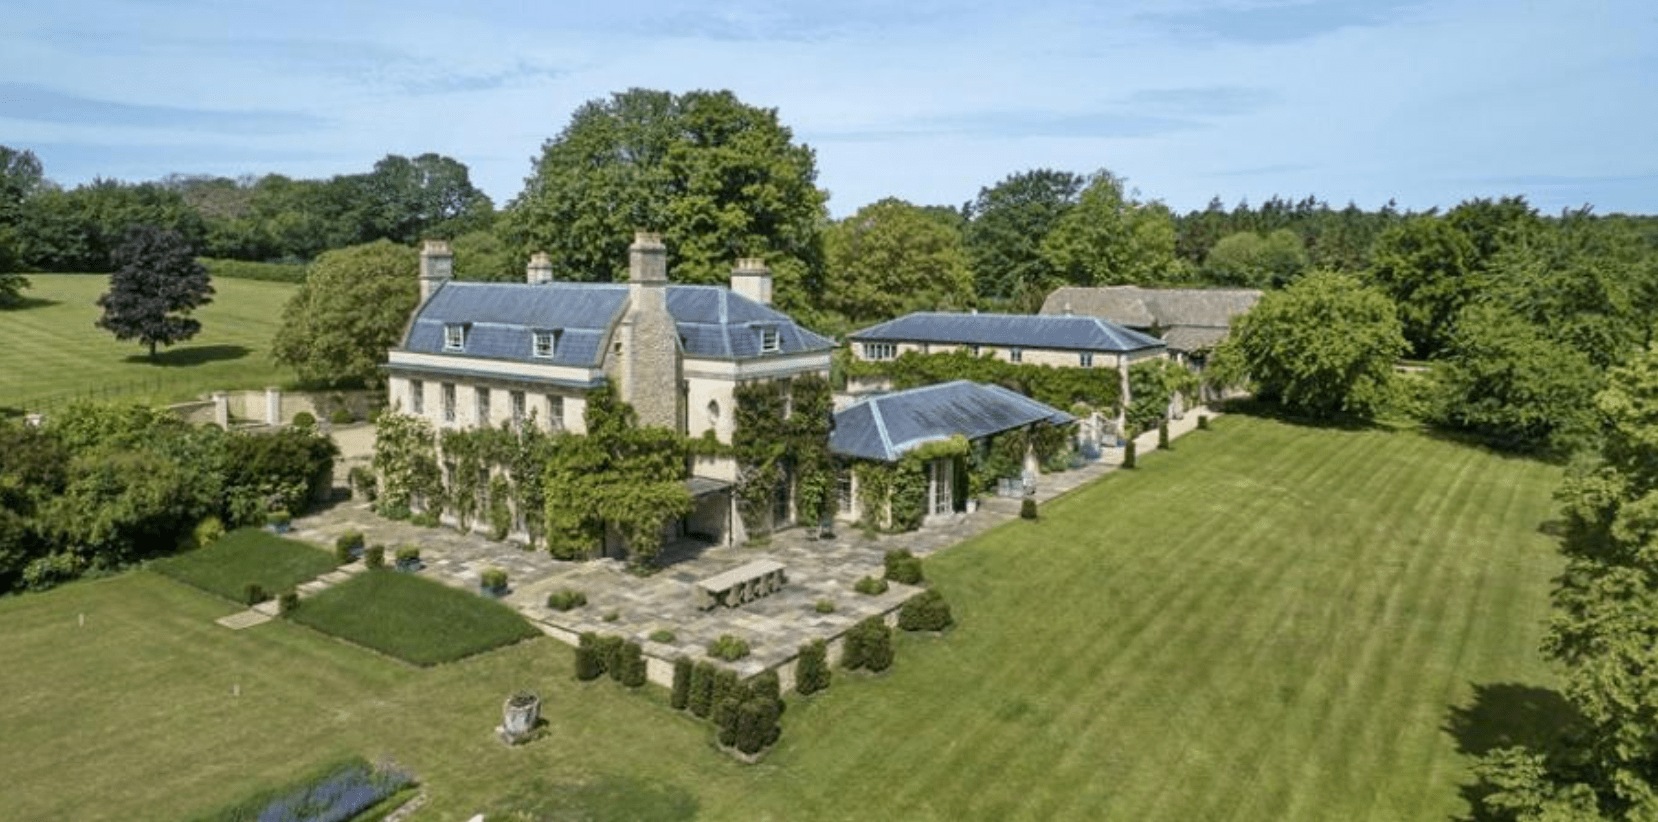 5 Epic Houses for Sale in the Cotswolds| Woodstock